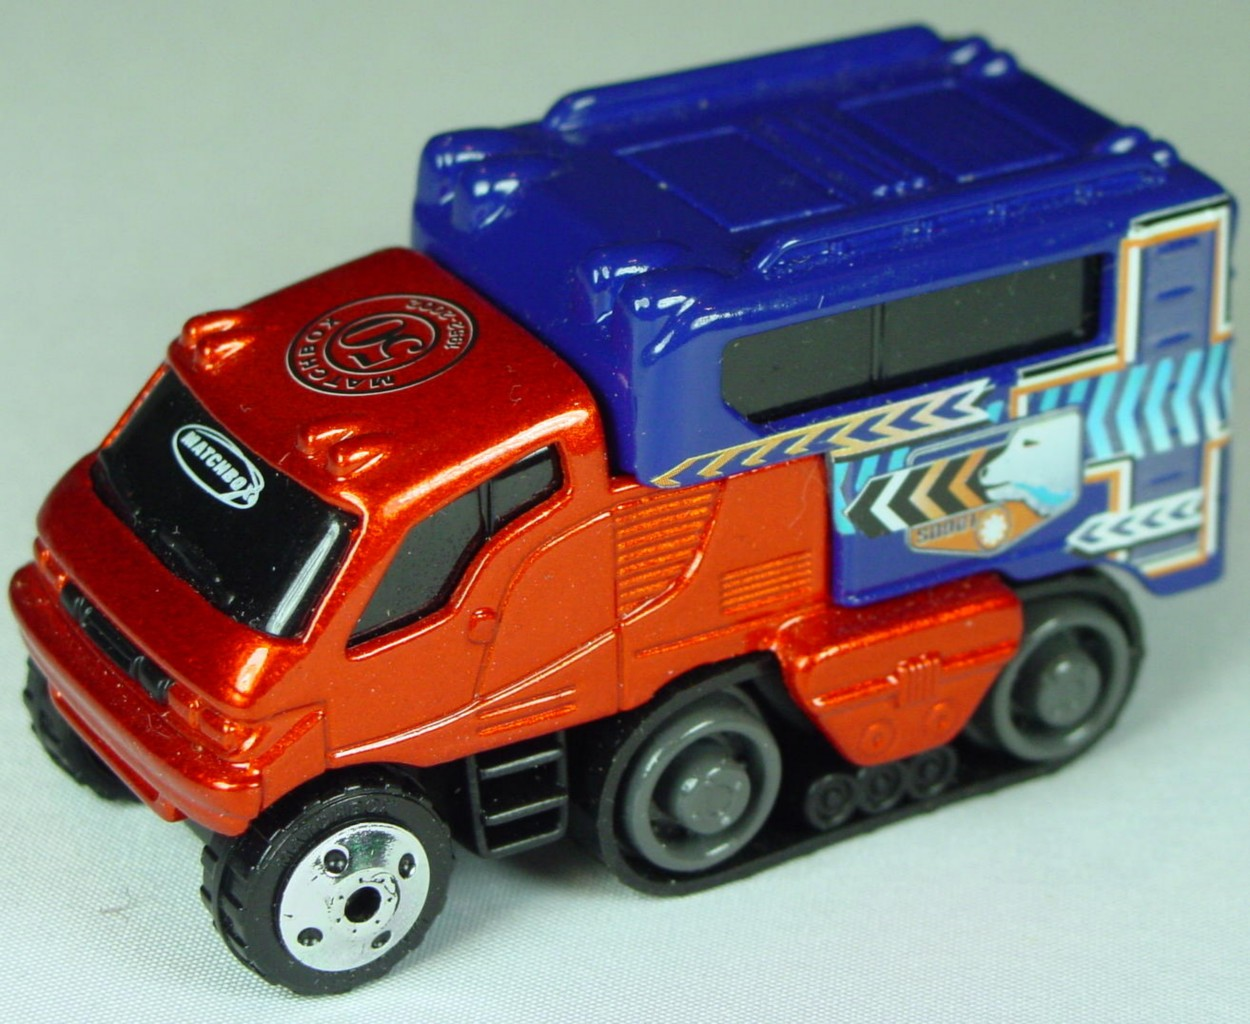 Pre-production 06 I 5 - Arctic Track truck met Brnz MBX 50 rivet glue made in China